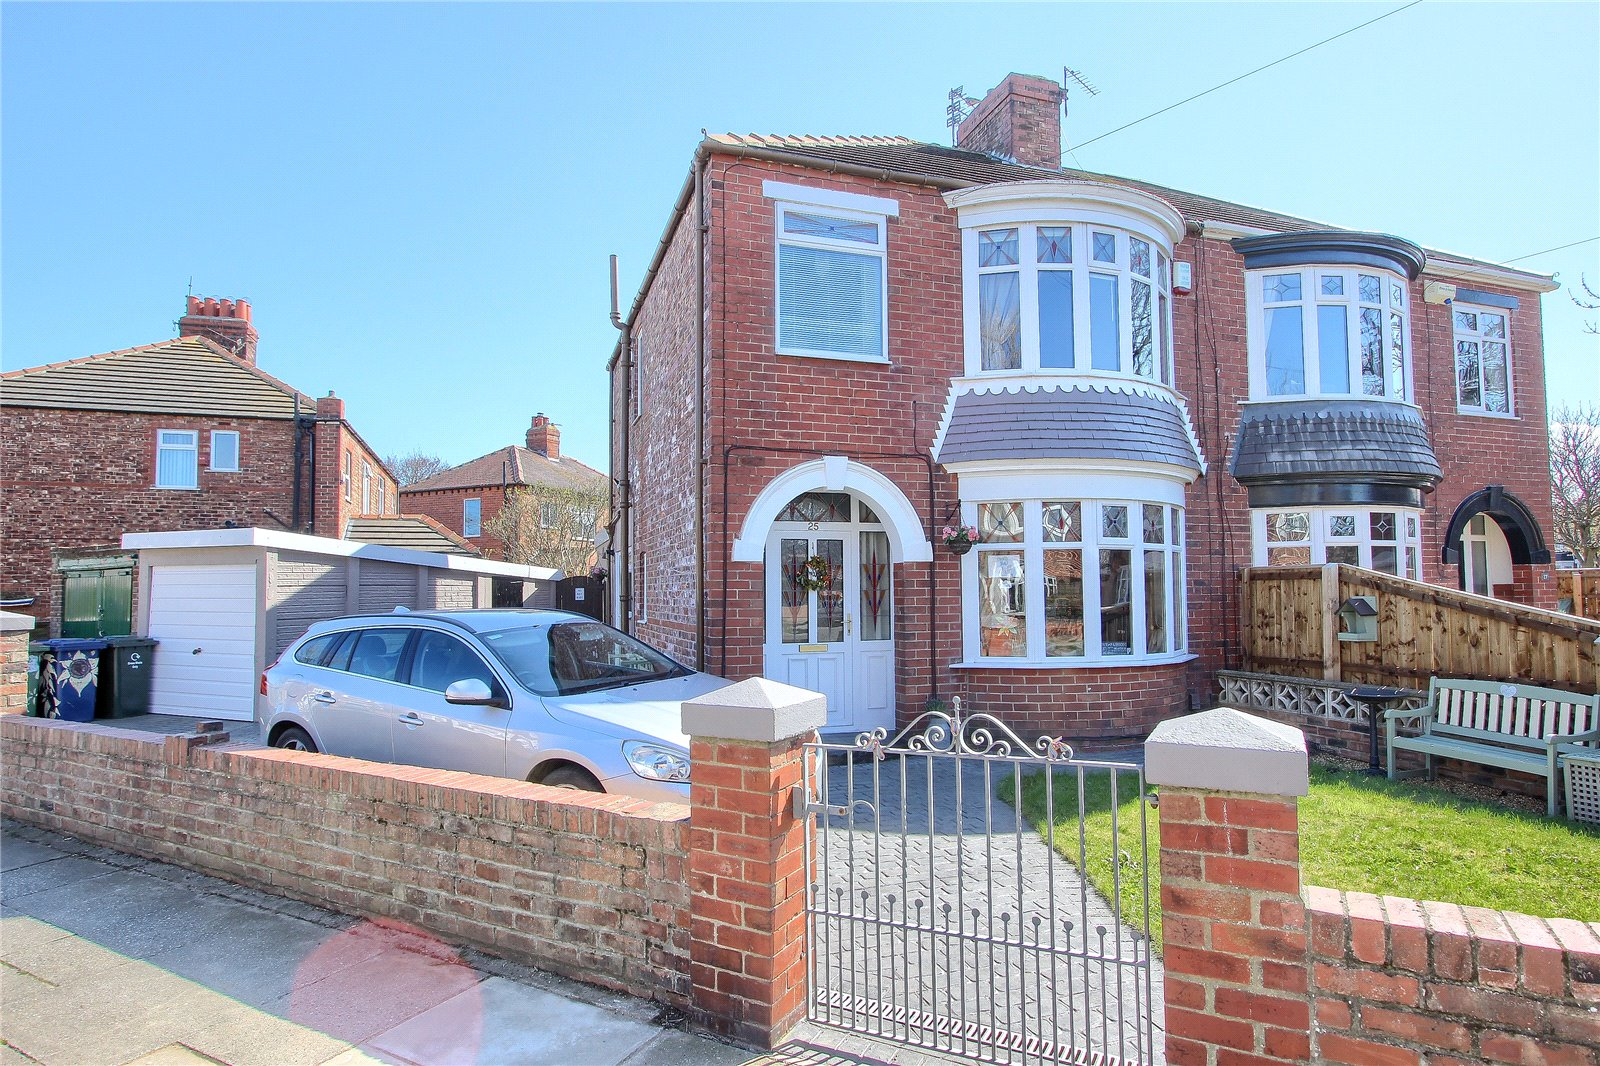 3 bed house for sale in Chester Road, Redcar 1